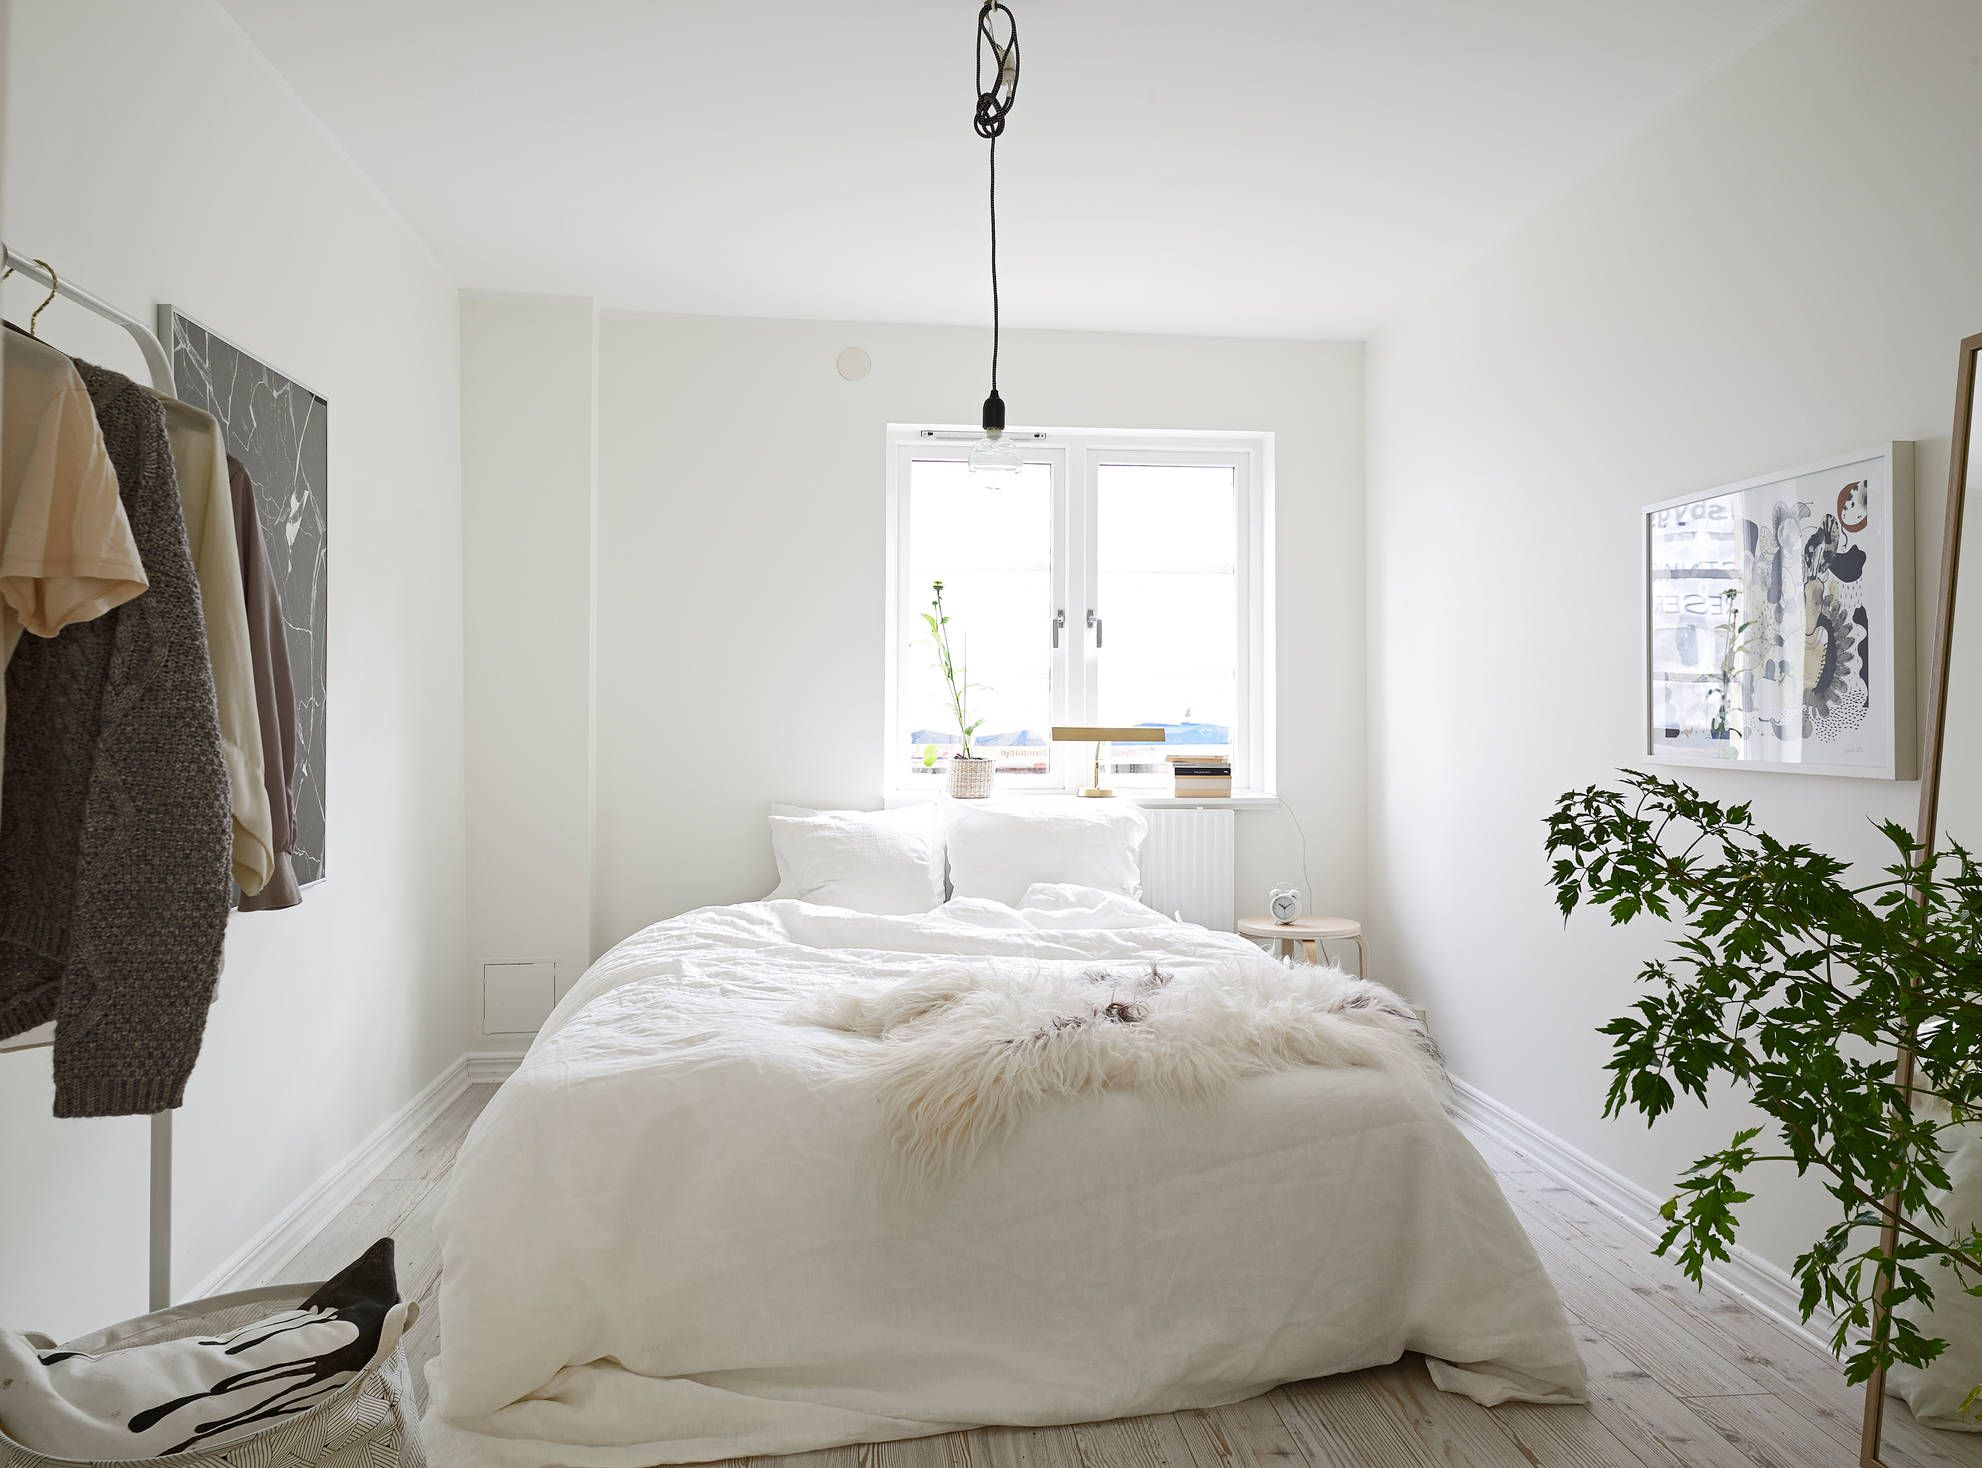 White bedroom designs tumblr - Indie Tumblr Room Google Search